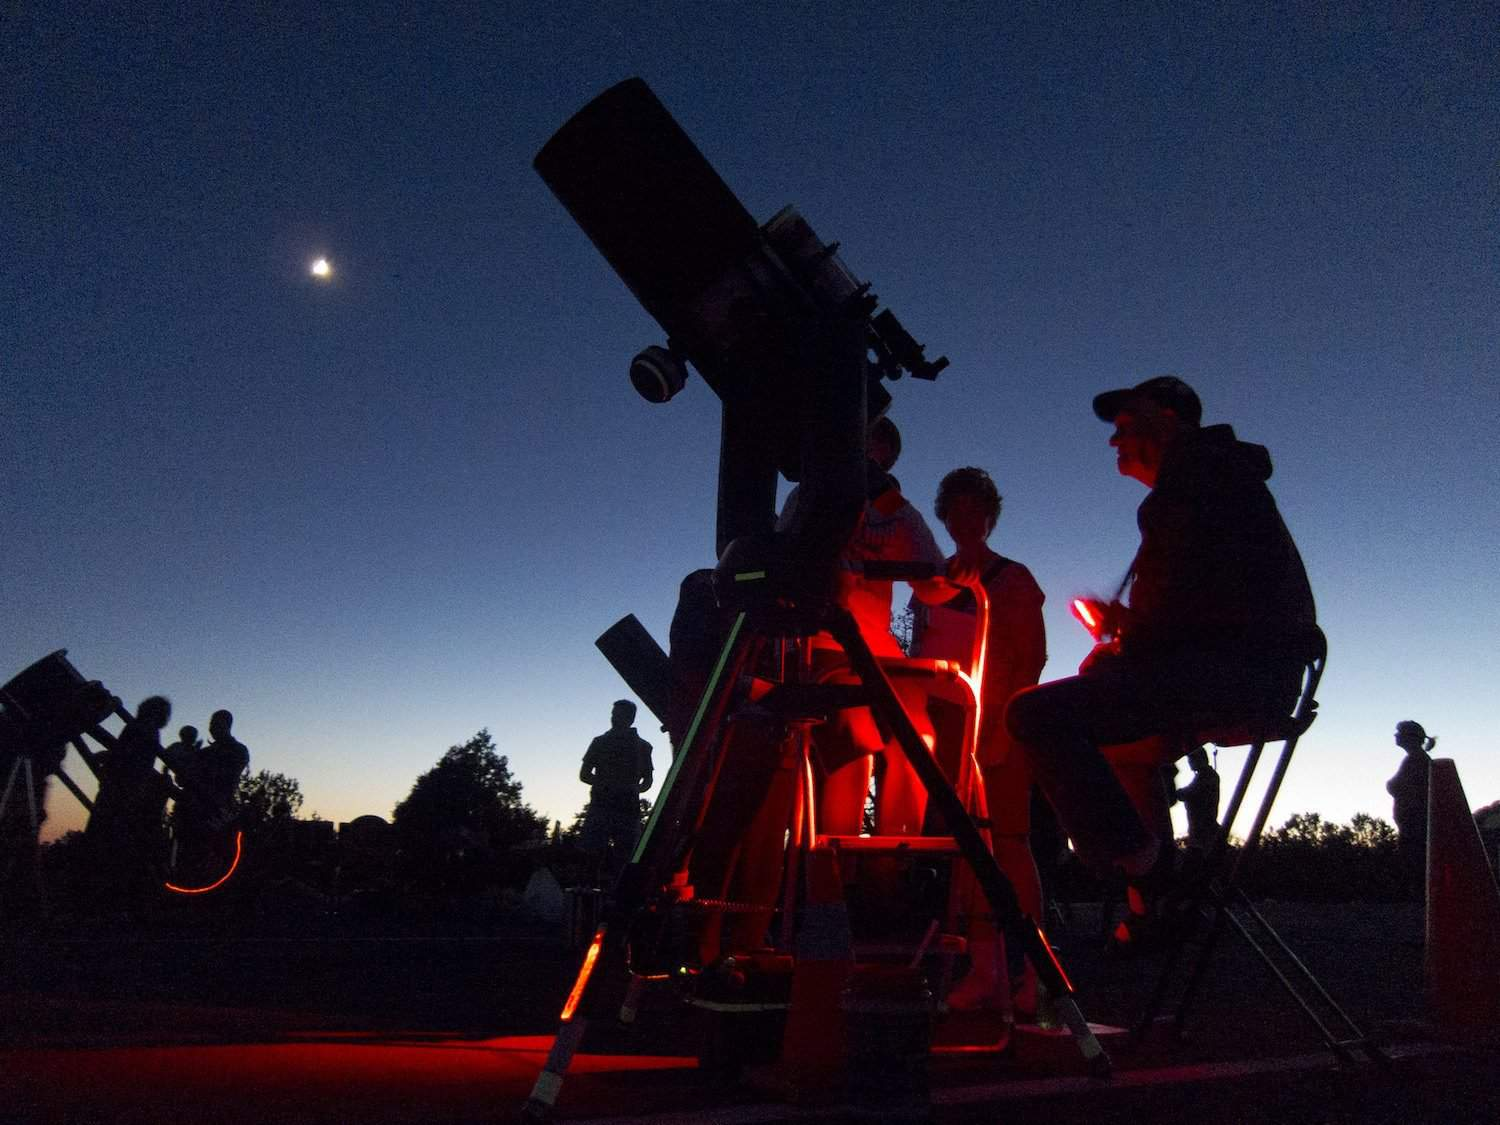 Grand Canyon Star Party - Michael Quinn for NPS via Flickr